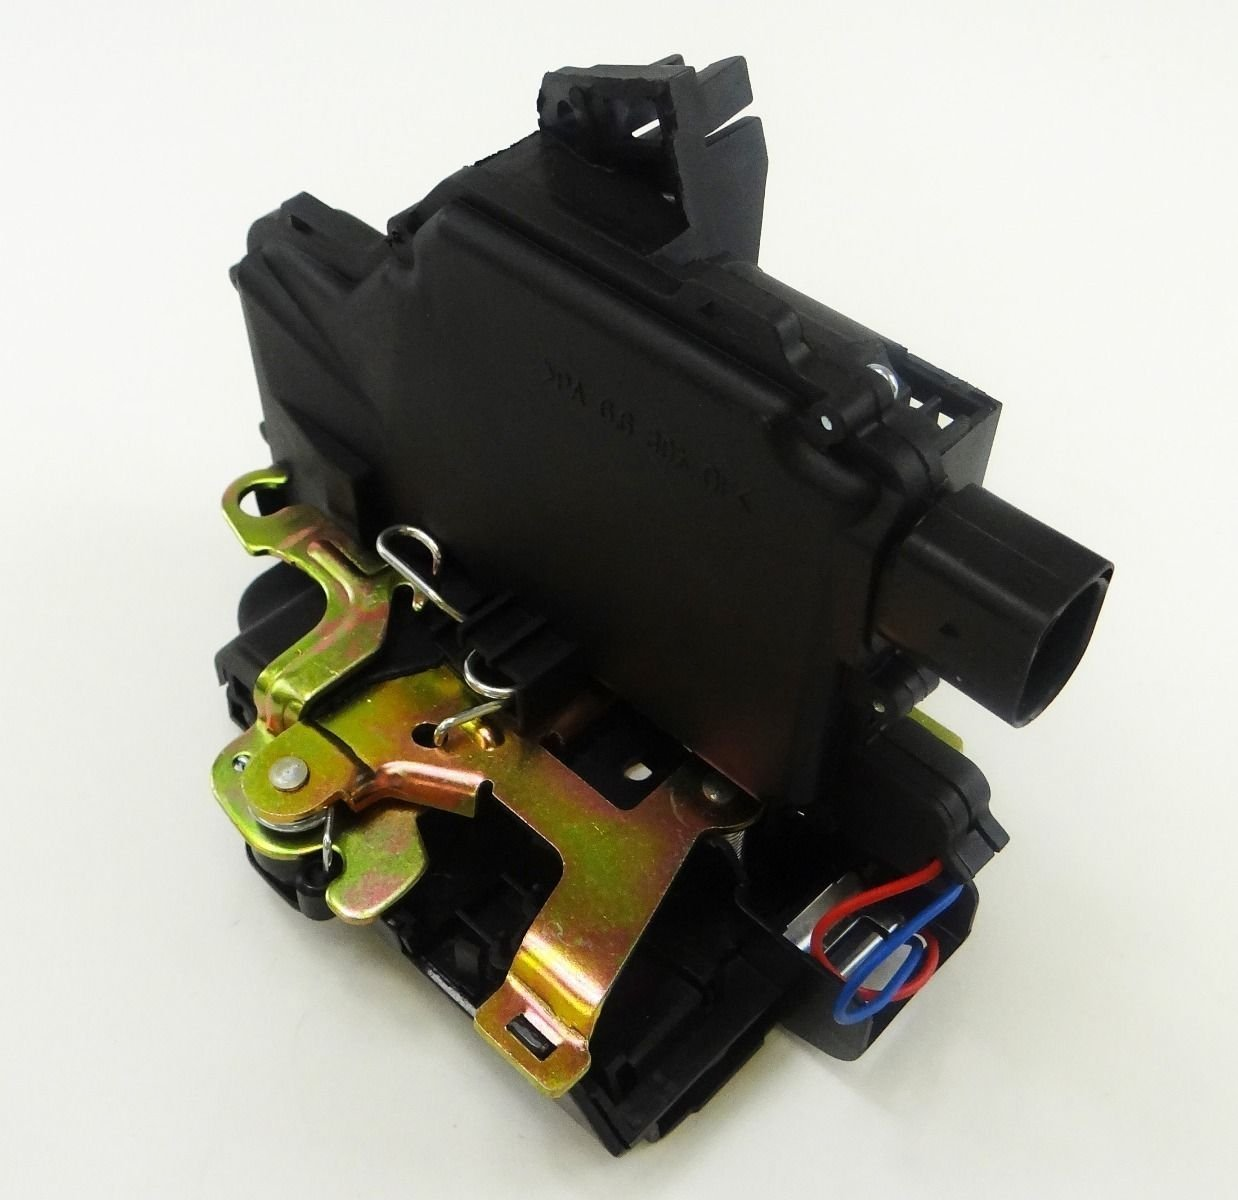 New Door Lock Actuator & Latch Front Left Driver Side For VW Jetta Passat Golf by Aftermarket (Image #2)